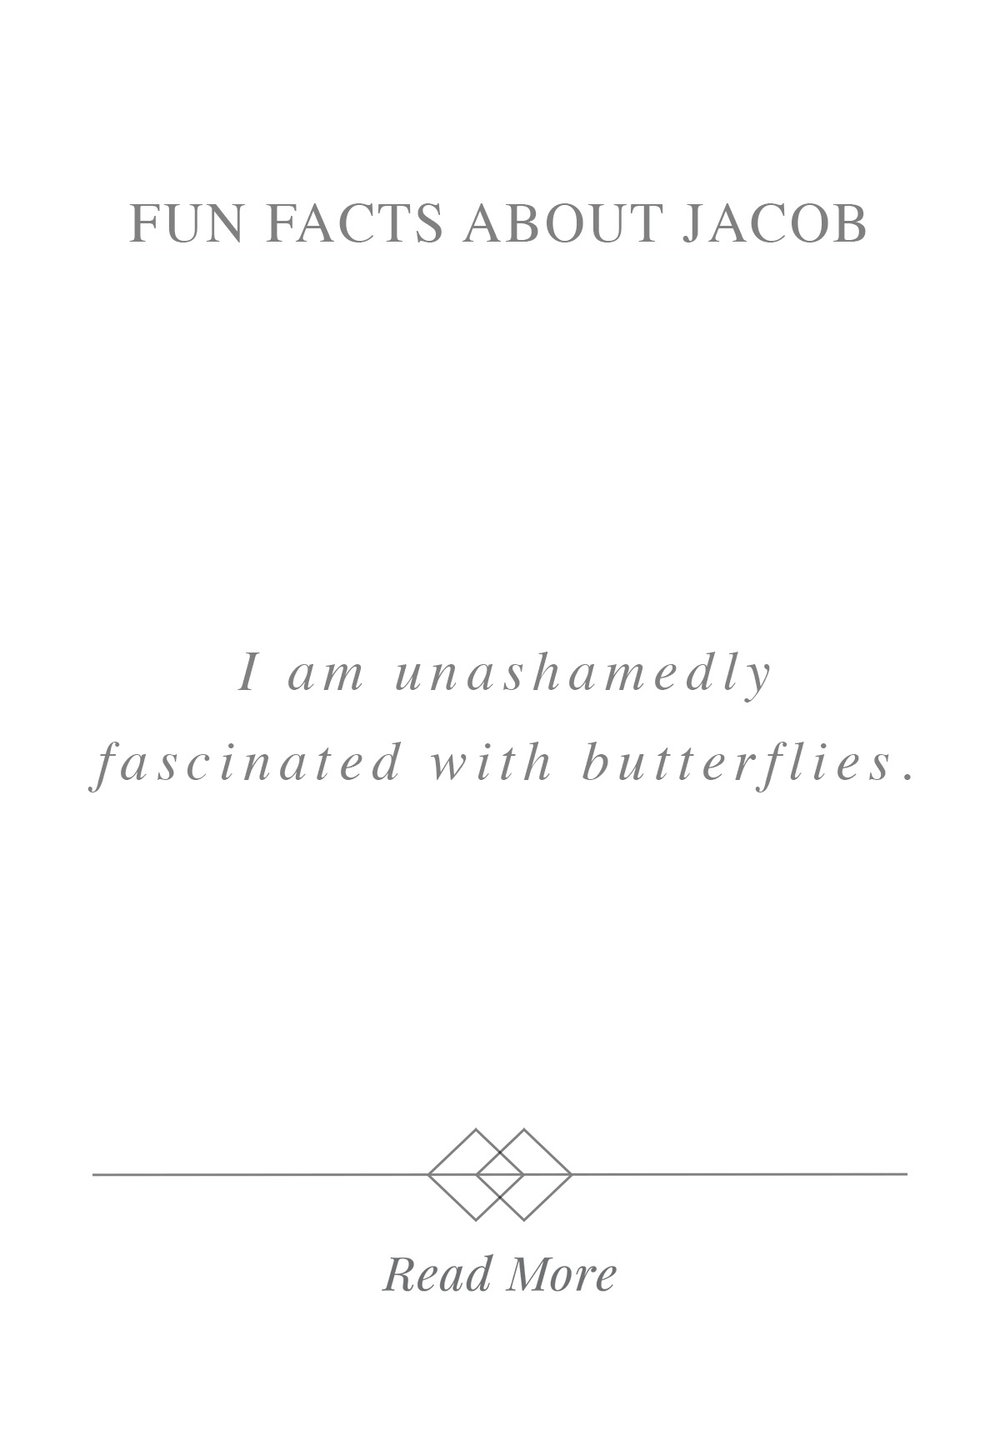 fun facts JACOB4.jpg